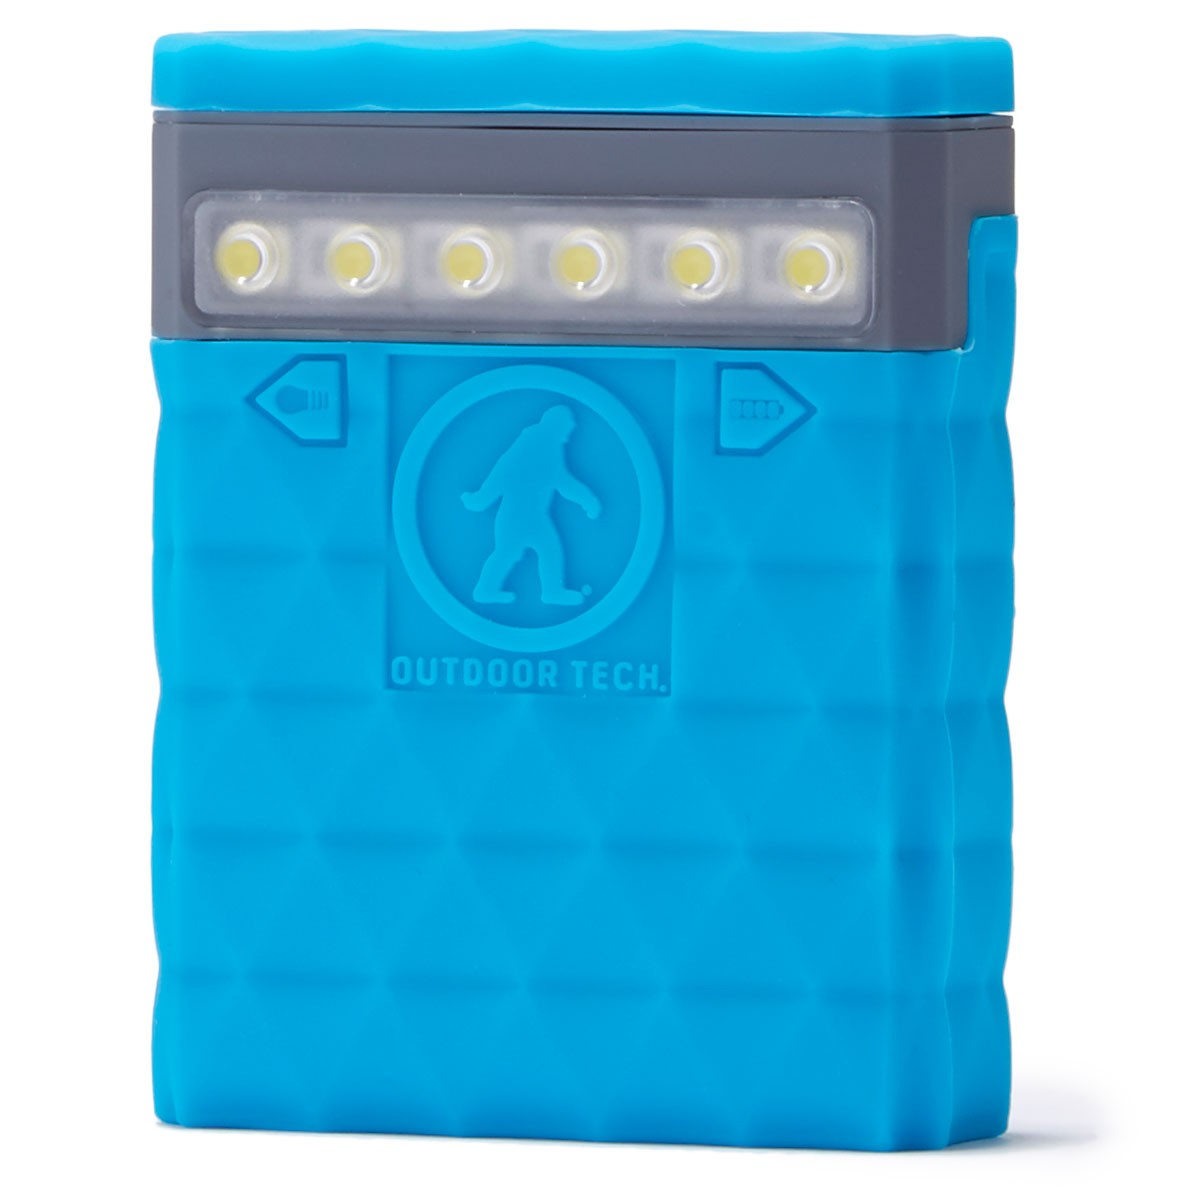 Outdoor Tech Kodiak 2.0 - Rugged 6000 Mah Powerbank Travel Accessory - Electric Blue